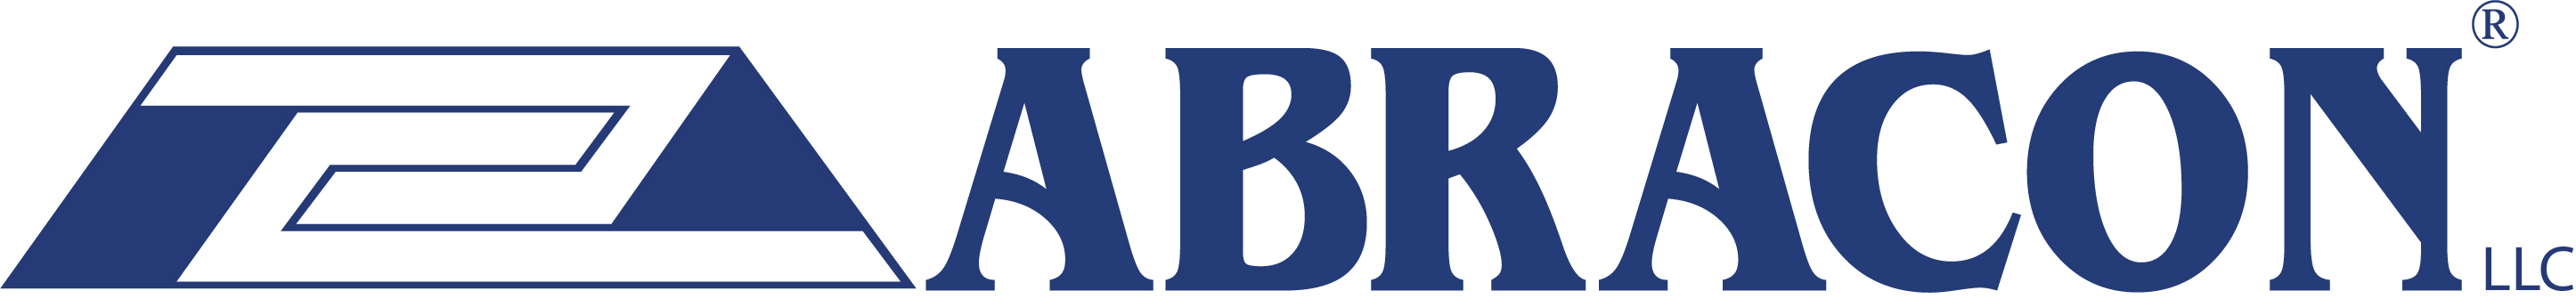 Abracon Acquires ILSI America LLC